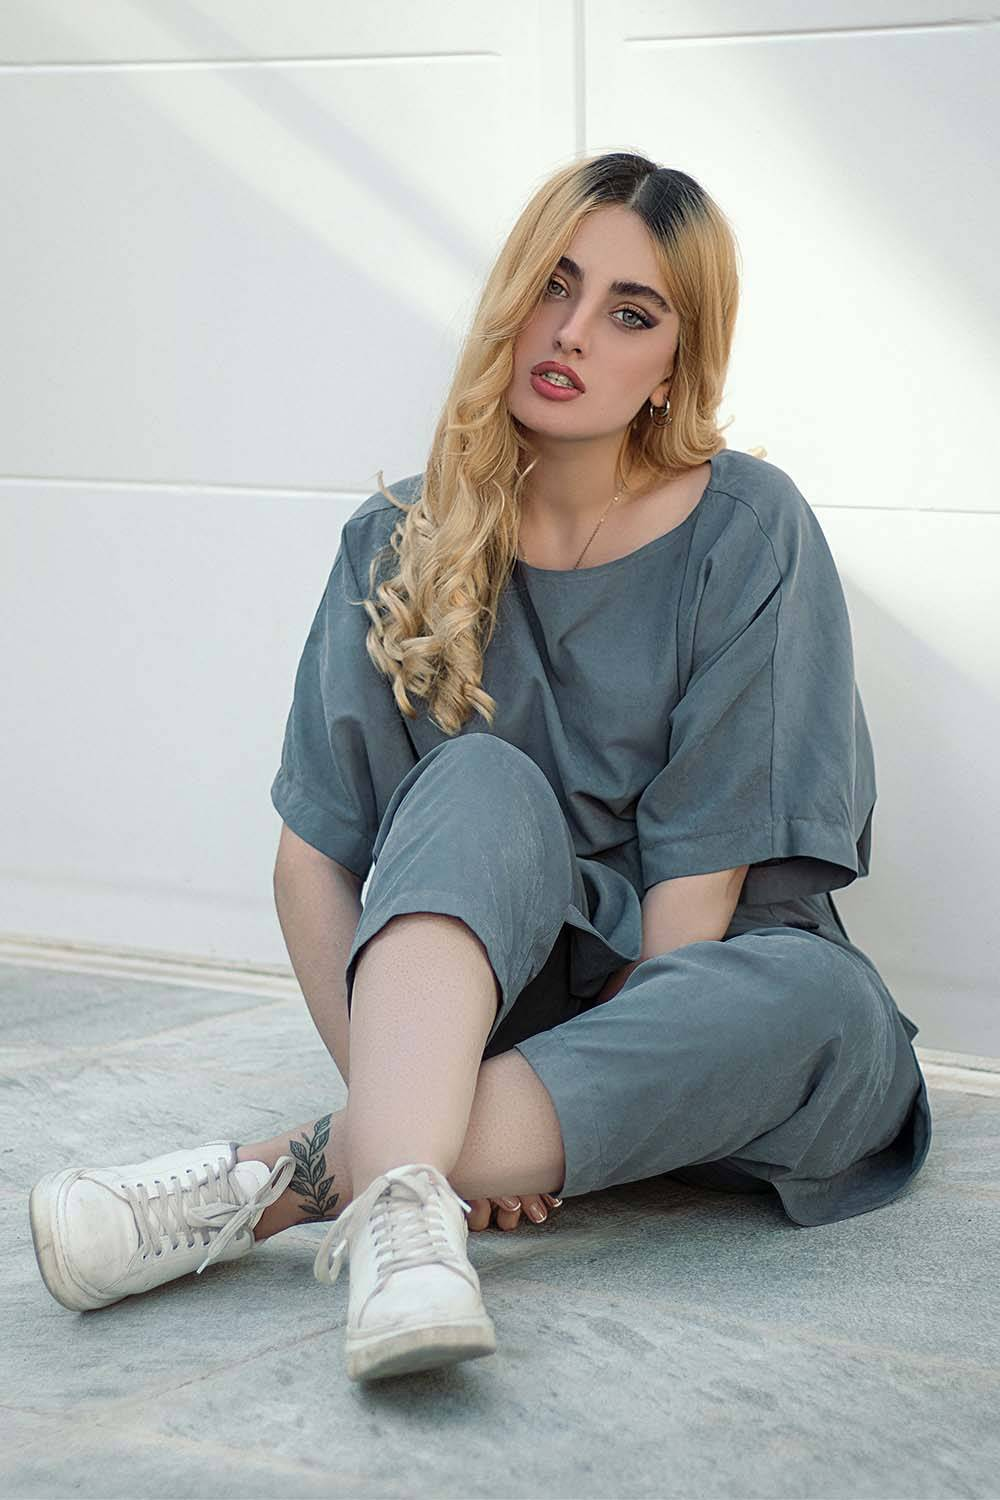 dress masculine as girl simple outfit